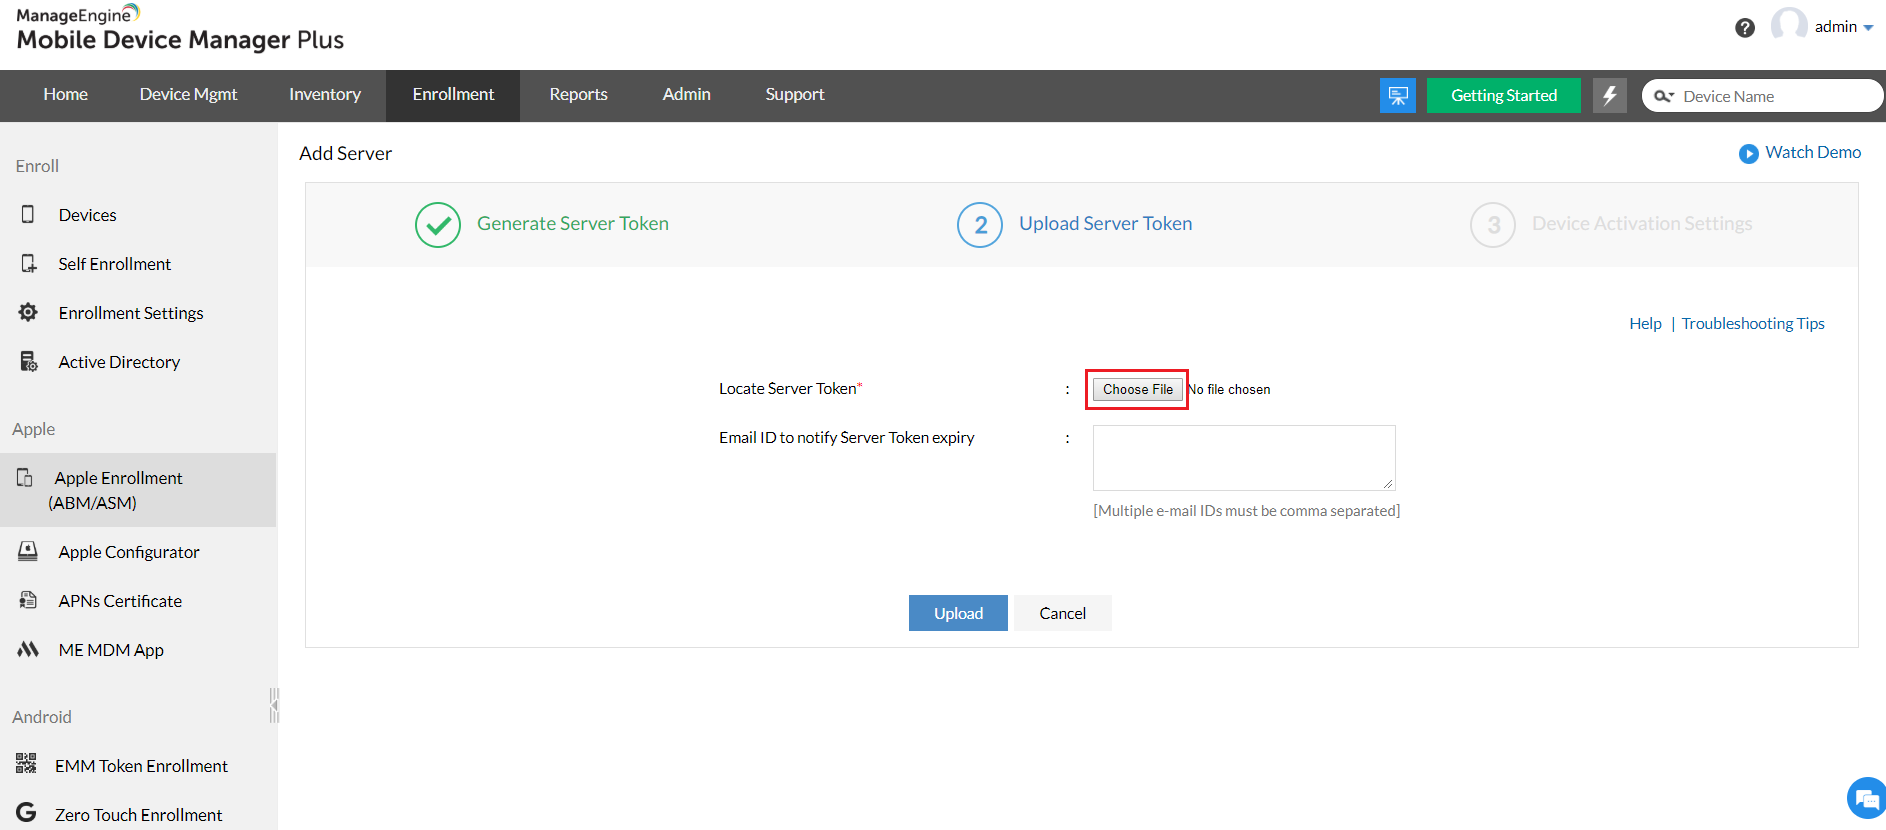 Uploading Apple School Manager (ASM) Server Token to the MDM server, to complete integration